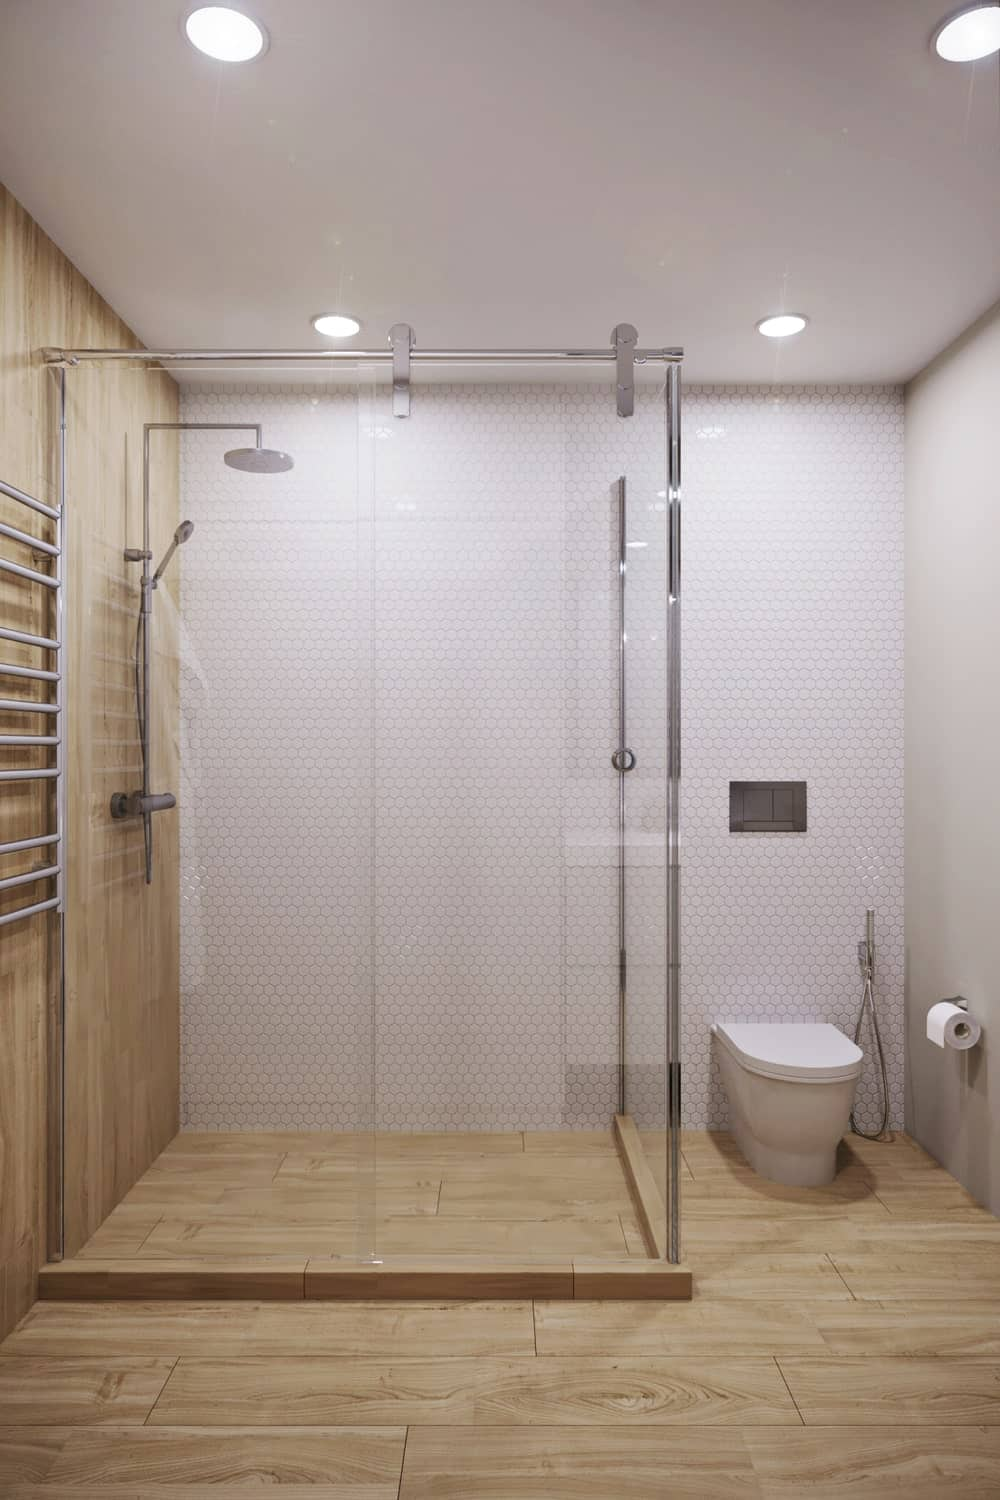 This view of the bathroom showcases more of the glass-enclosed shower area and the toilet beside it within its own alcove.